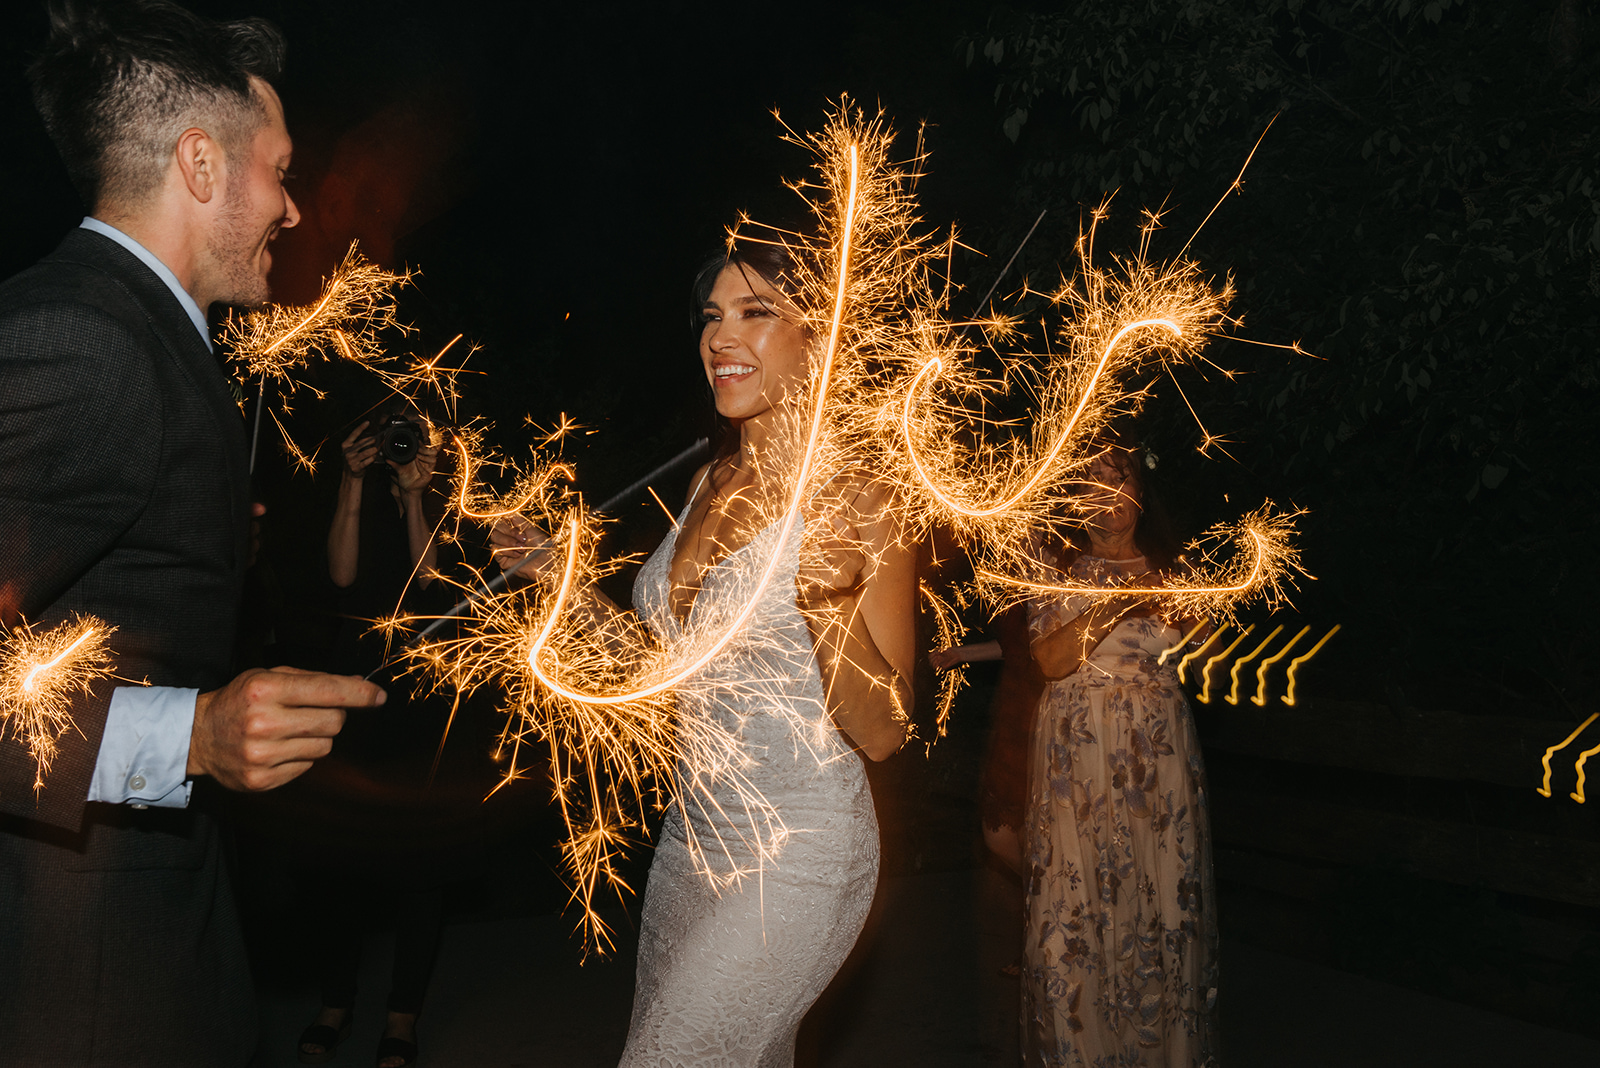 Sparkler dance party with the bride and groom - Pearl Weddings & Events